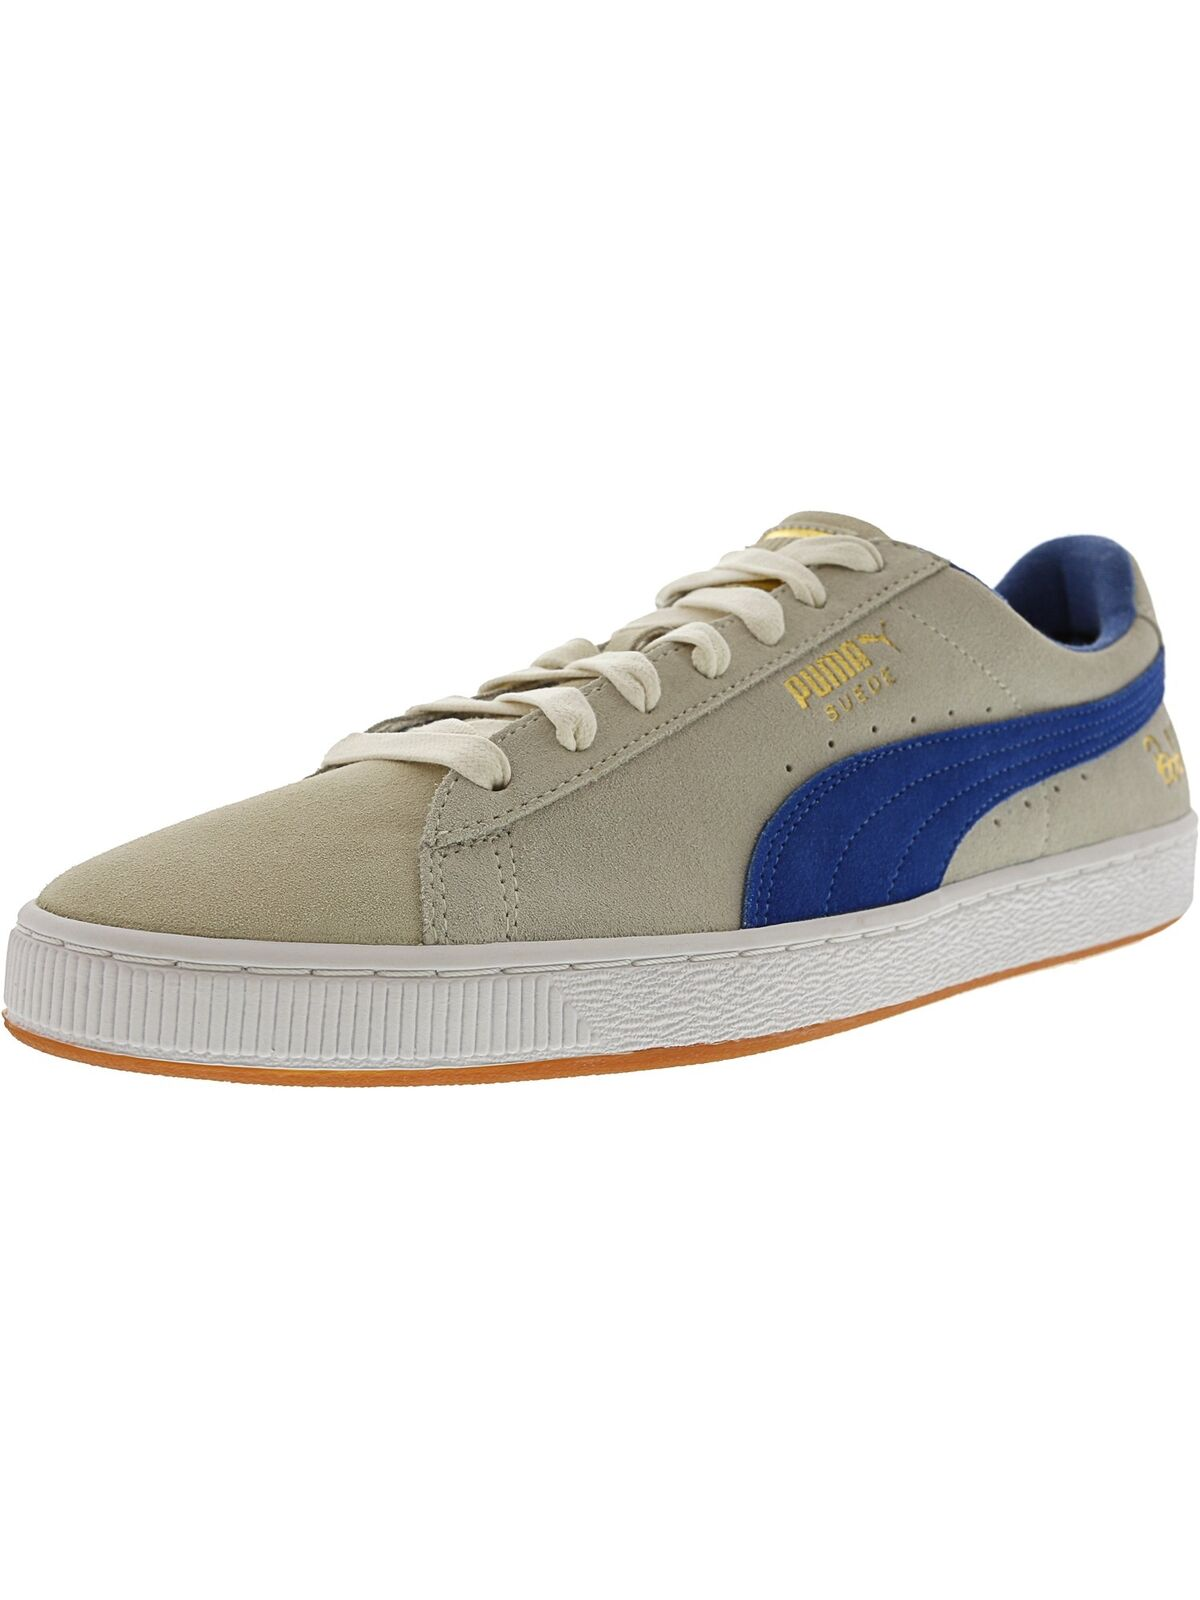 Puma Men's Suede Classic X Bobbito Ankle-High Fashion Sneaker